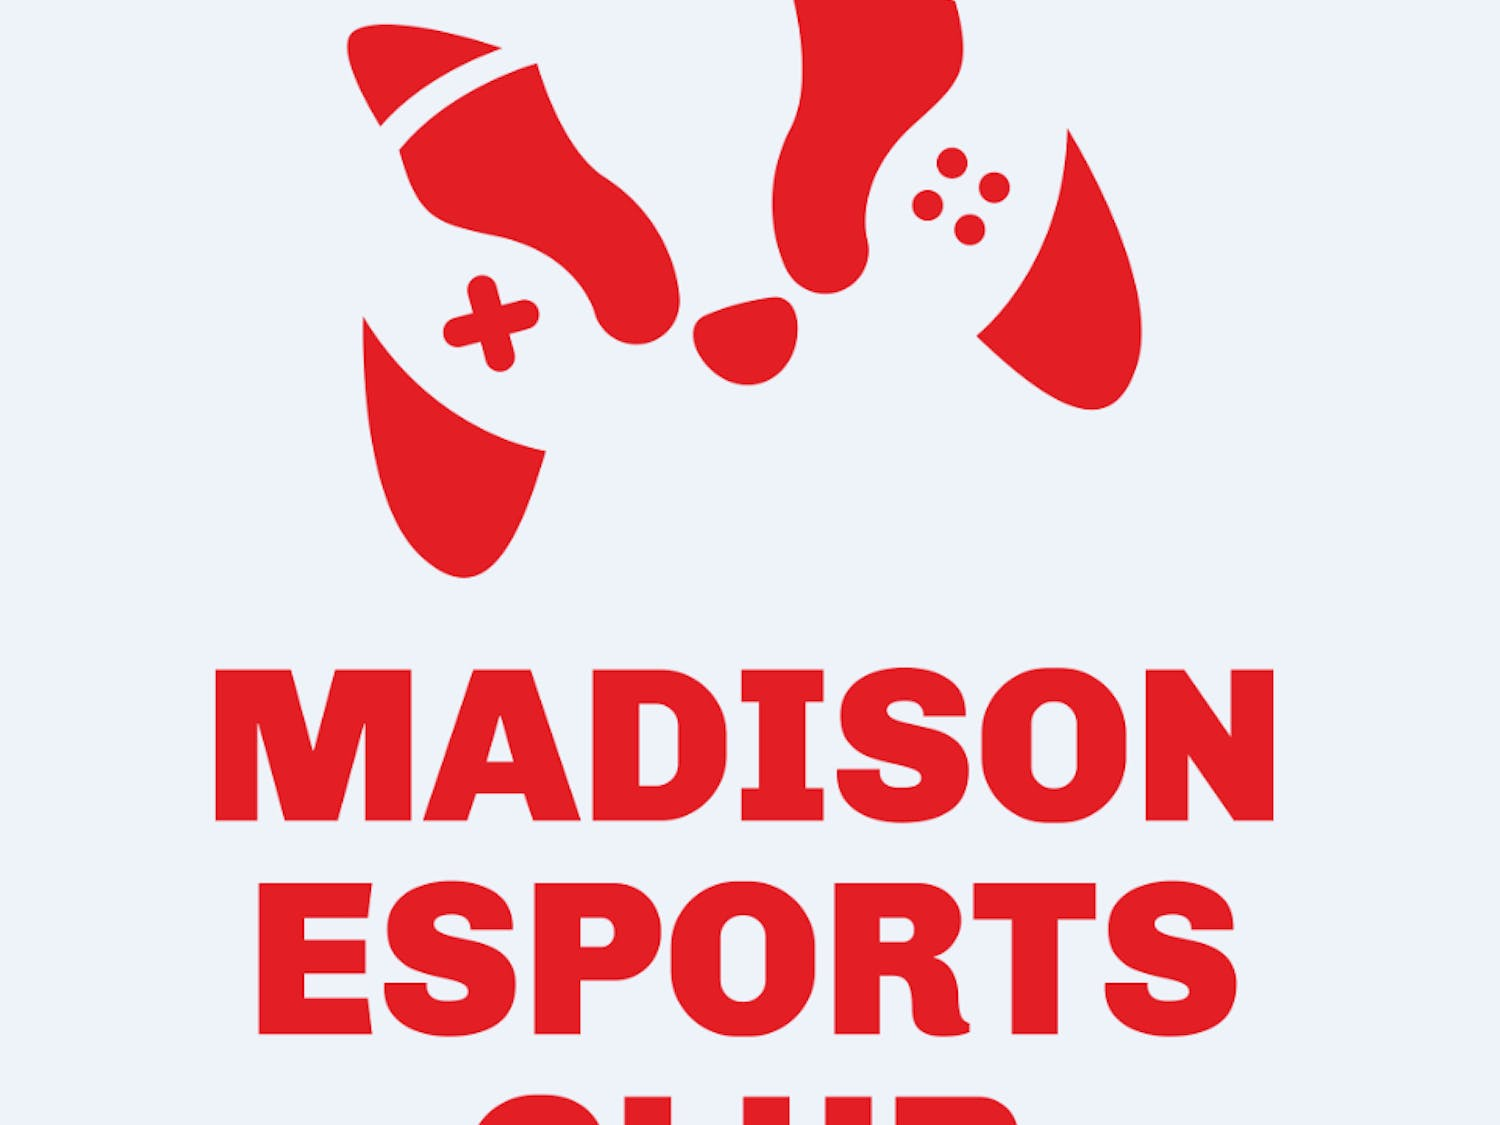 Madison Esports is a club for competitive and casual players alike.